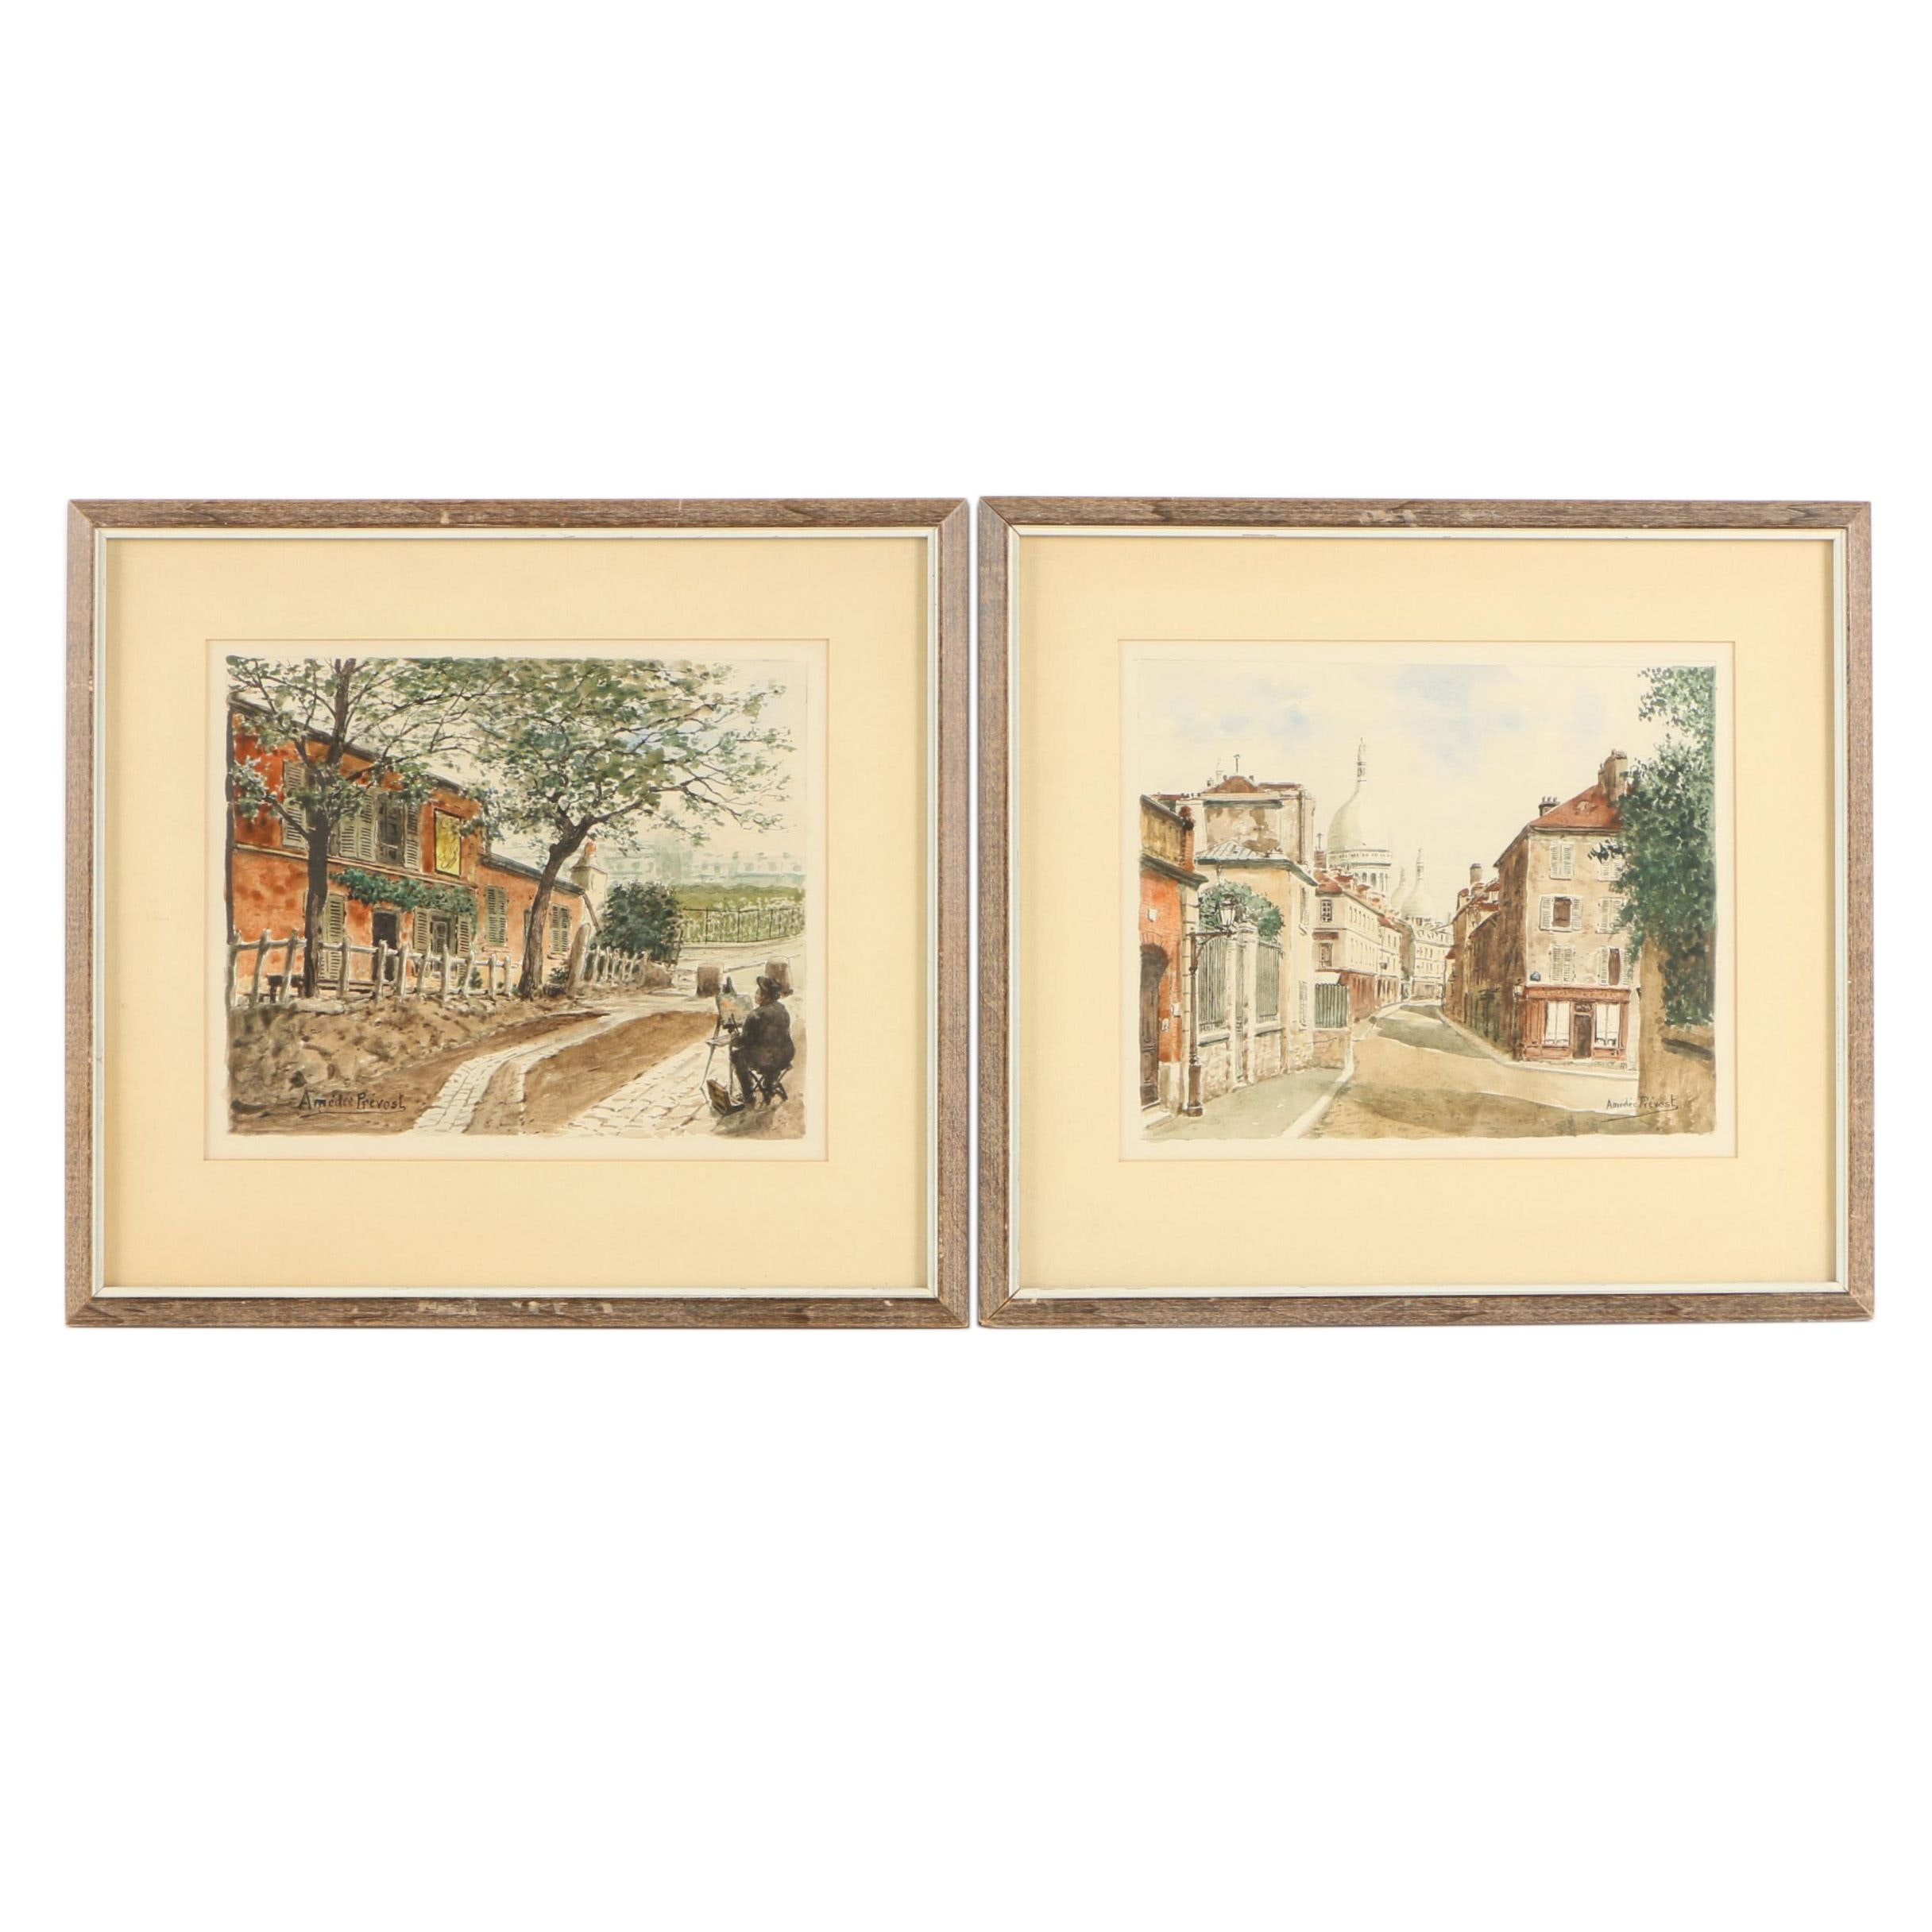 Two Amédée Prevost Watercolor Paintings on Paper of Street Scenes